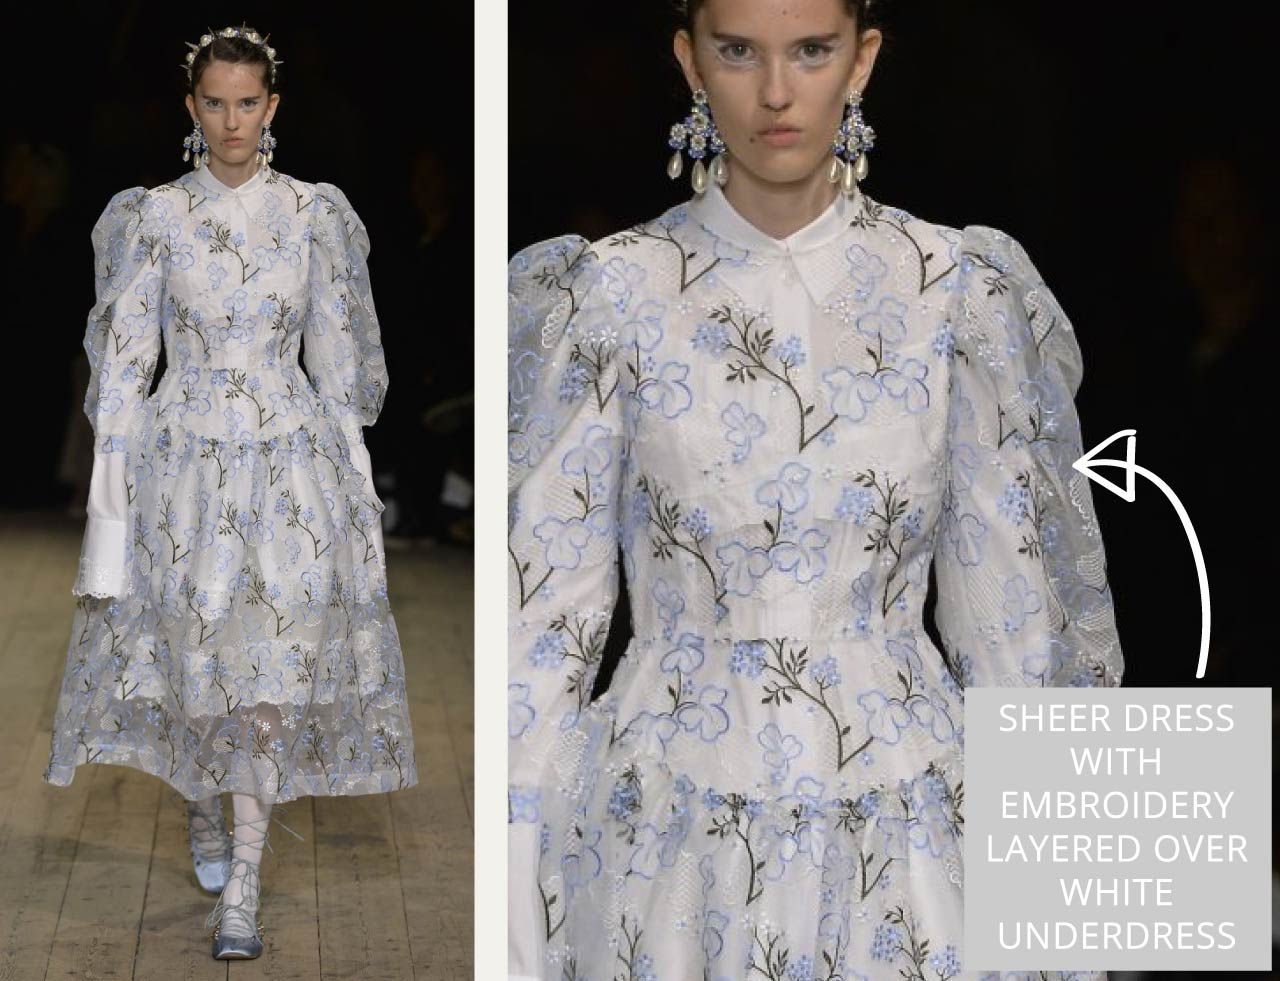 Translucent Layers at Simone Rocha | The Cutting Class. Sheer dress with embroidery layered over white underdress.